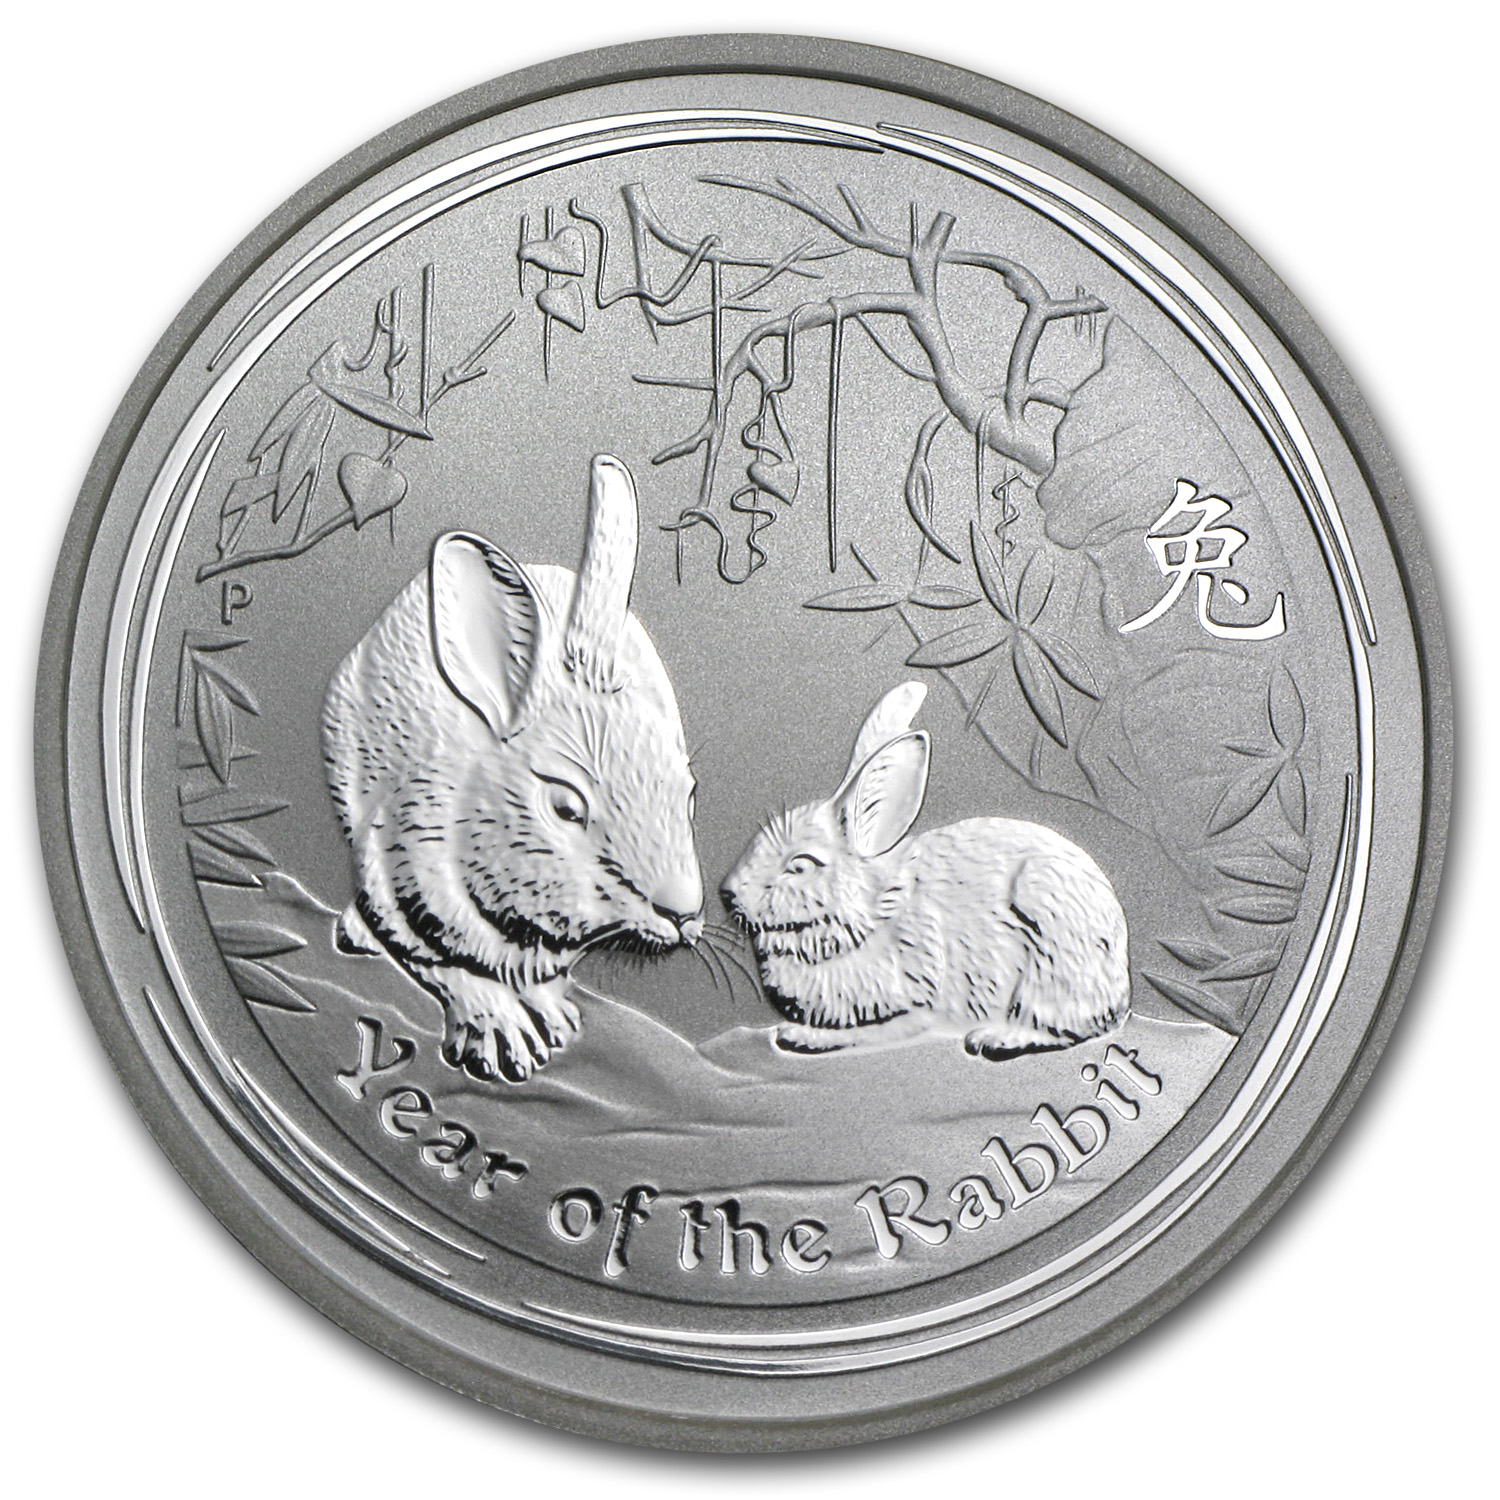 2011 1/2 oz Silver Australian Year of the Rabbit Coin